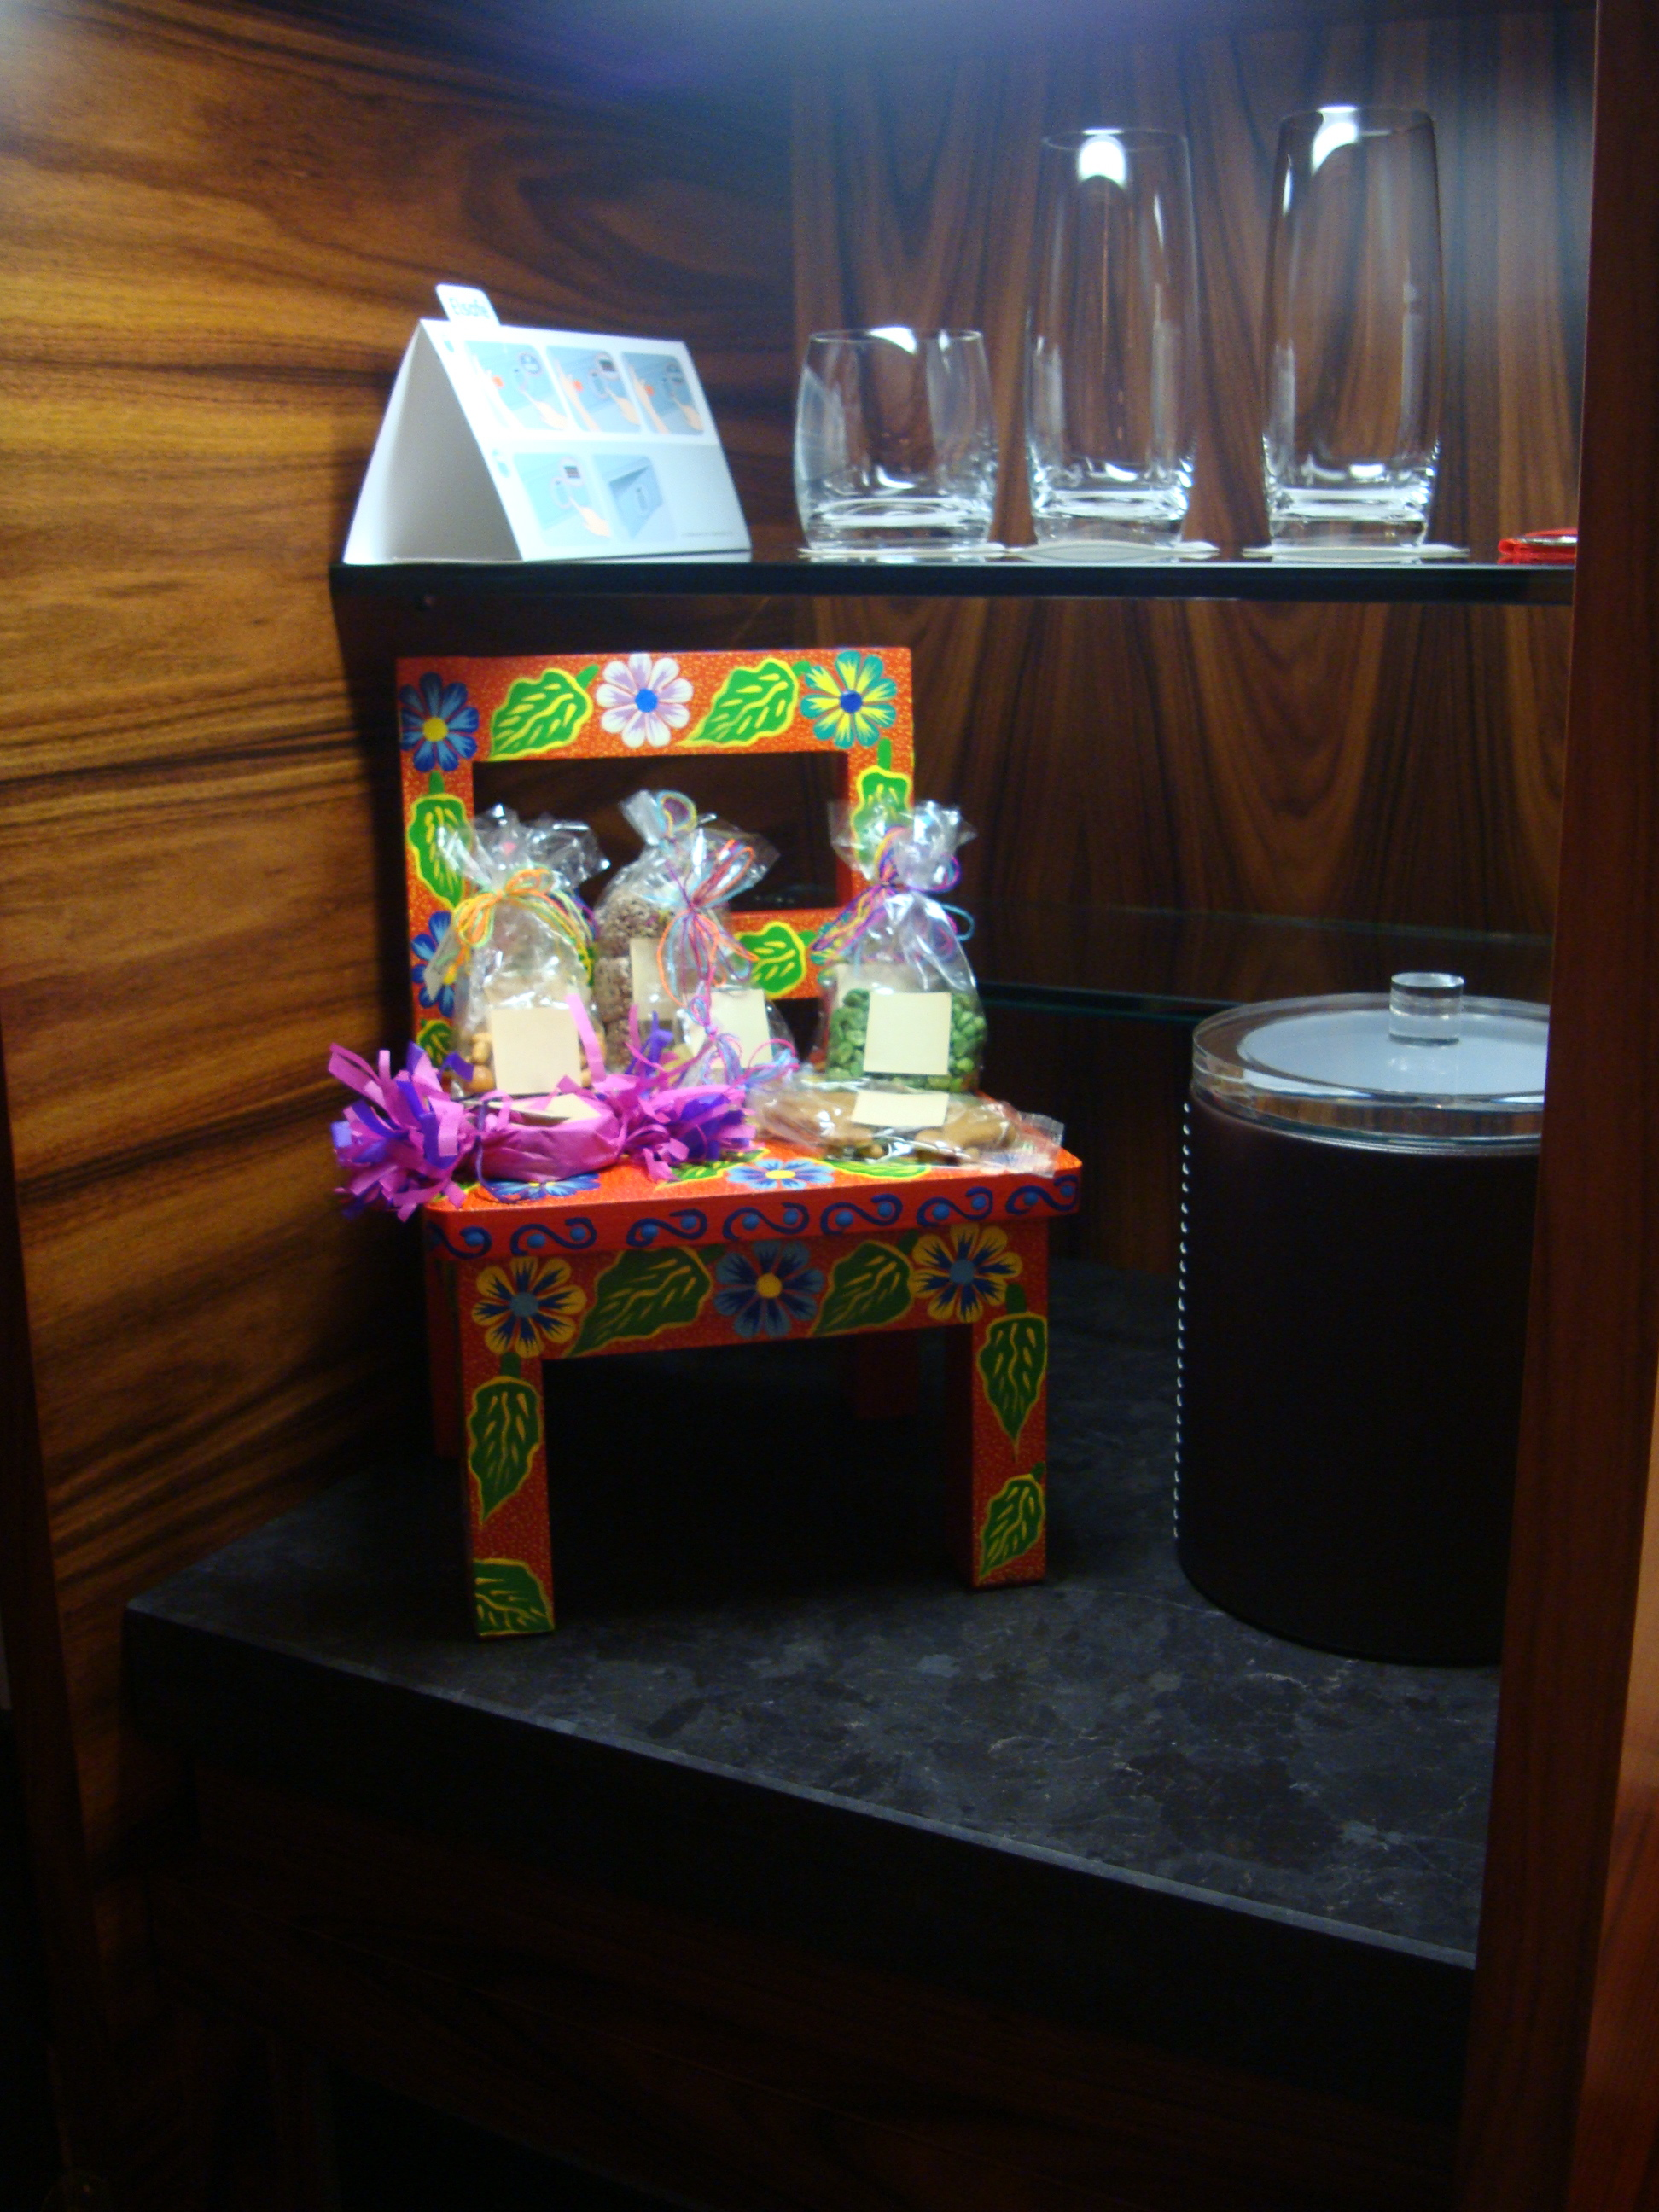 The minibar at Las Alcobas Hotel in Mexico City contains free Mexican snacks and candies—a nice touch